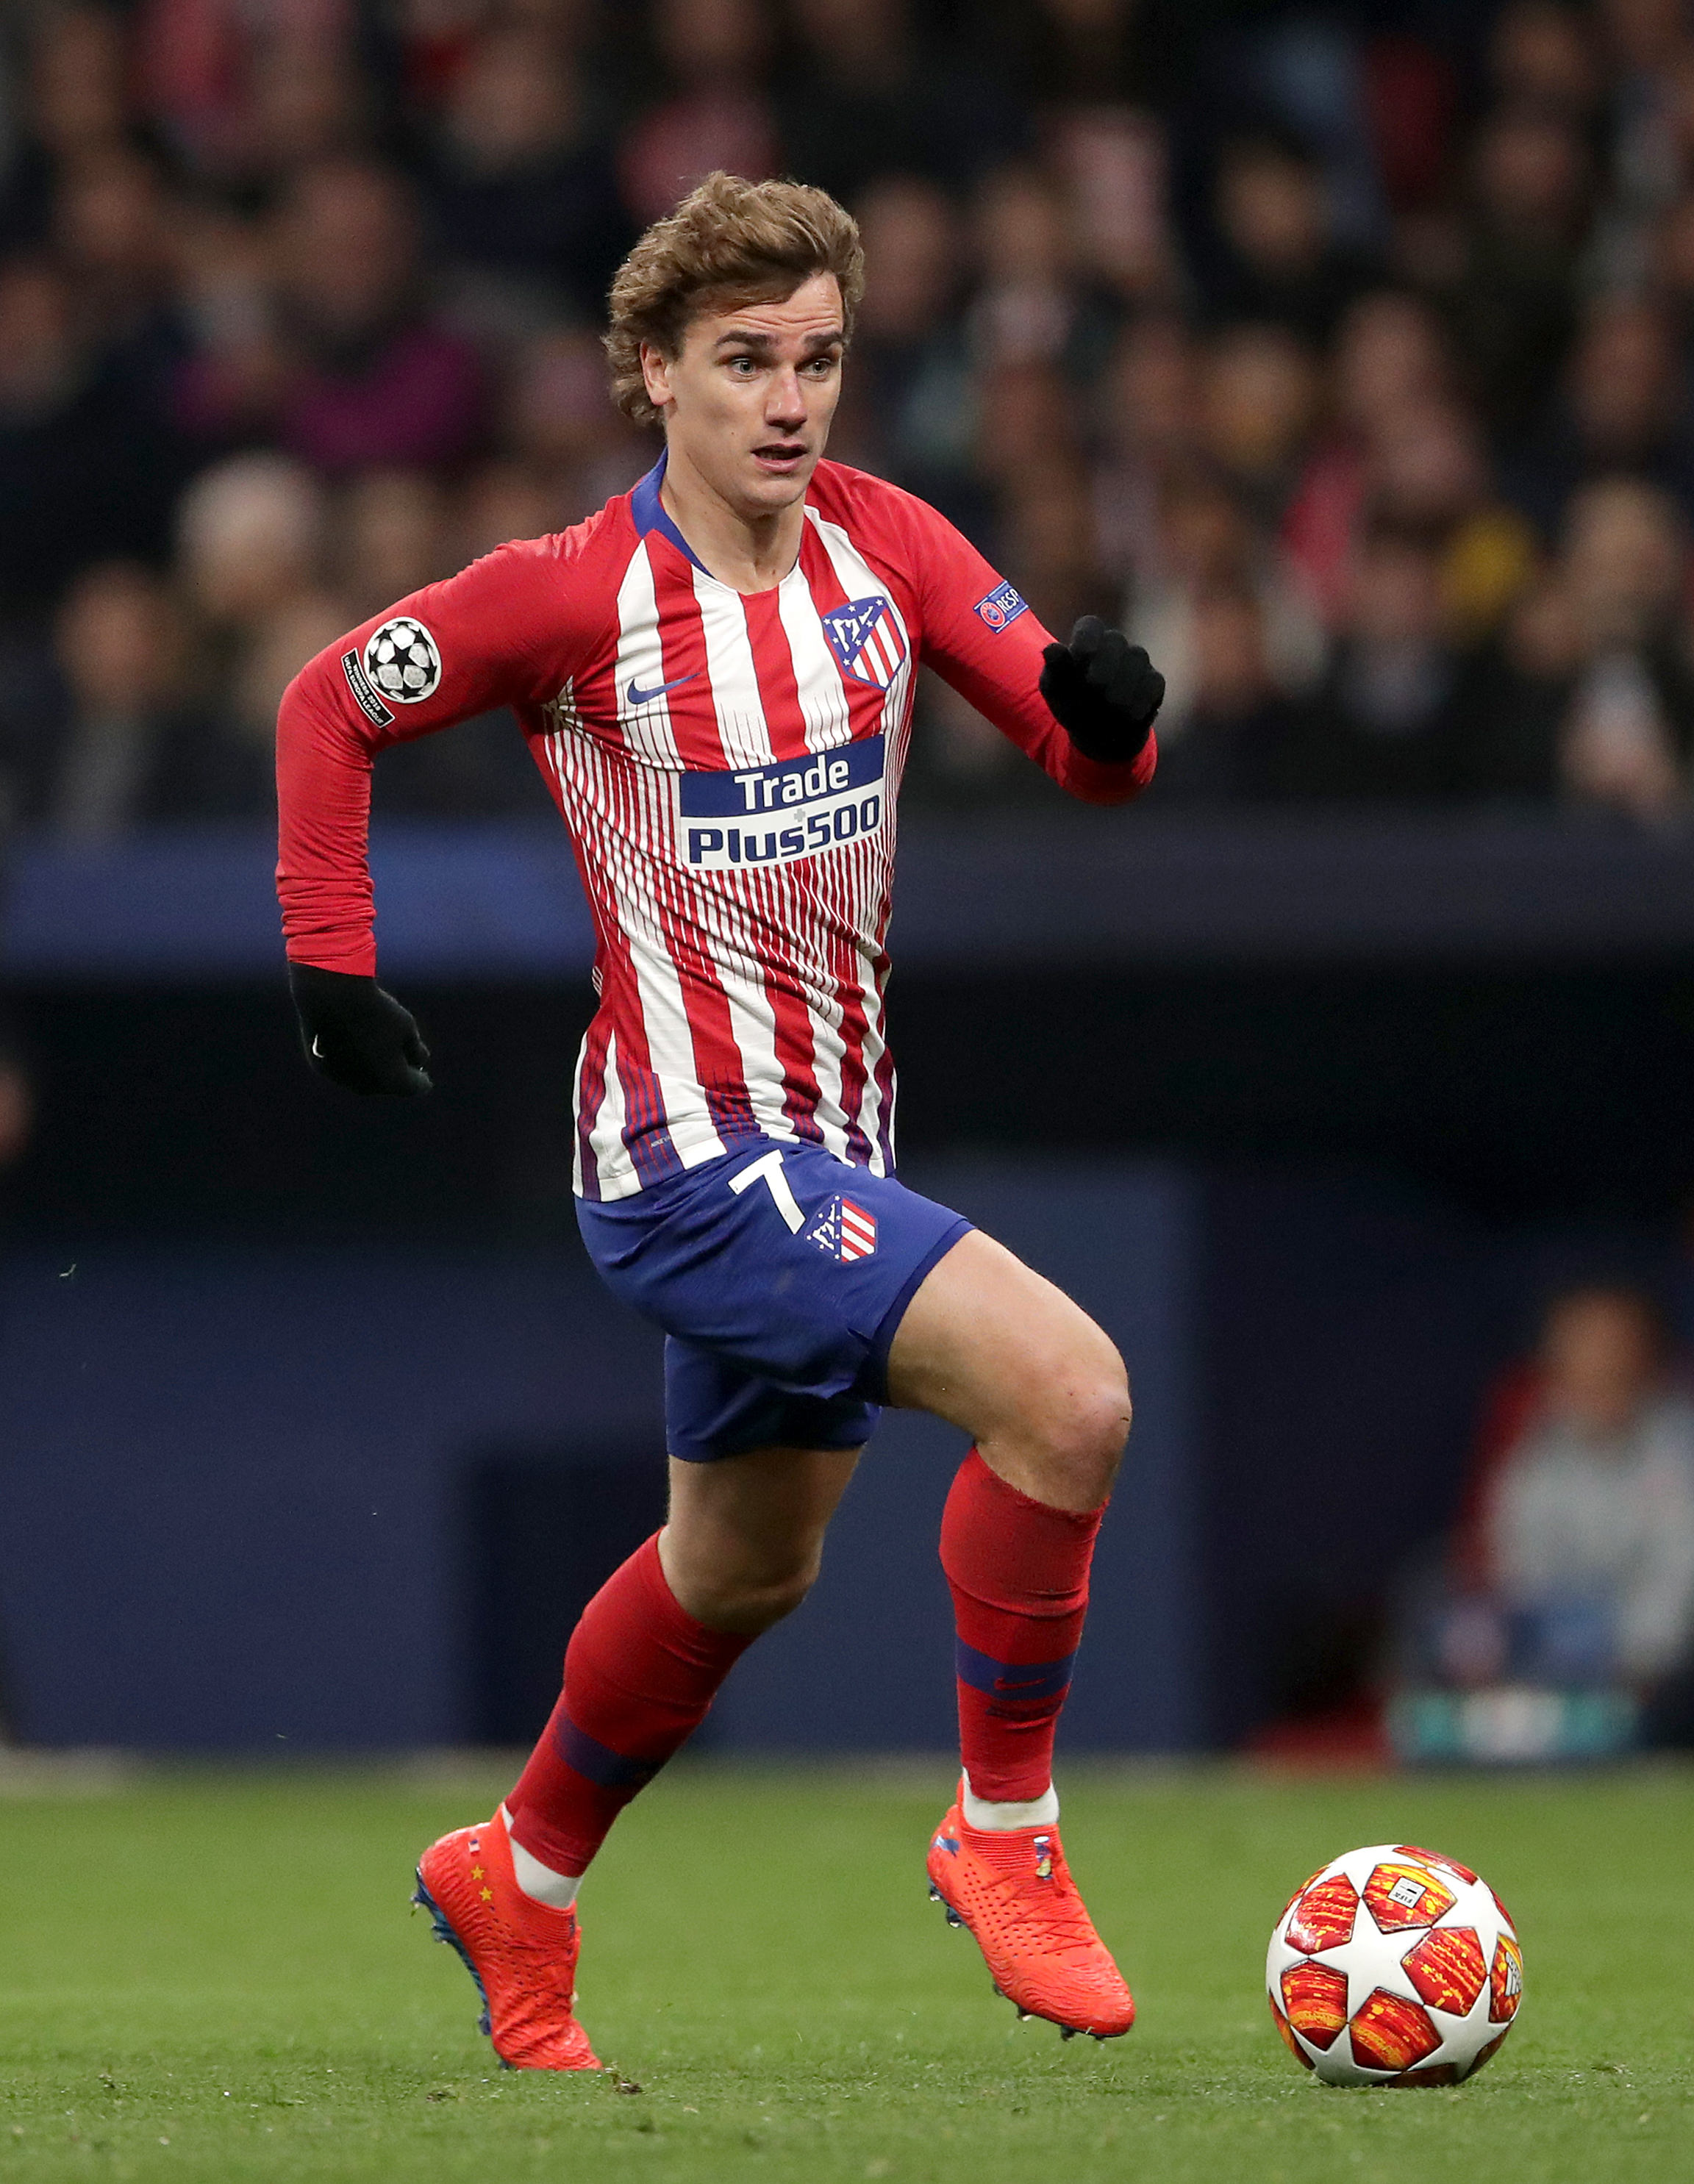 Antoine_Griezmann_runs_with_the_ball_Barcelona_atletico_madrid_football4football